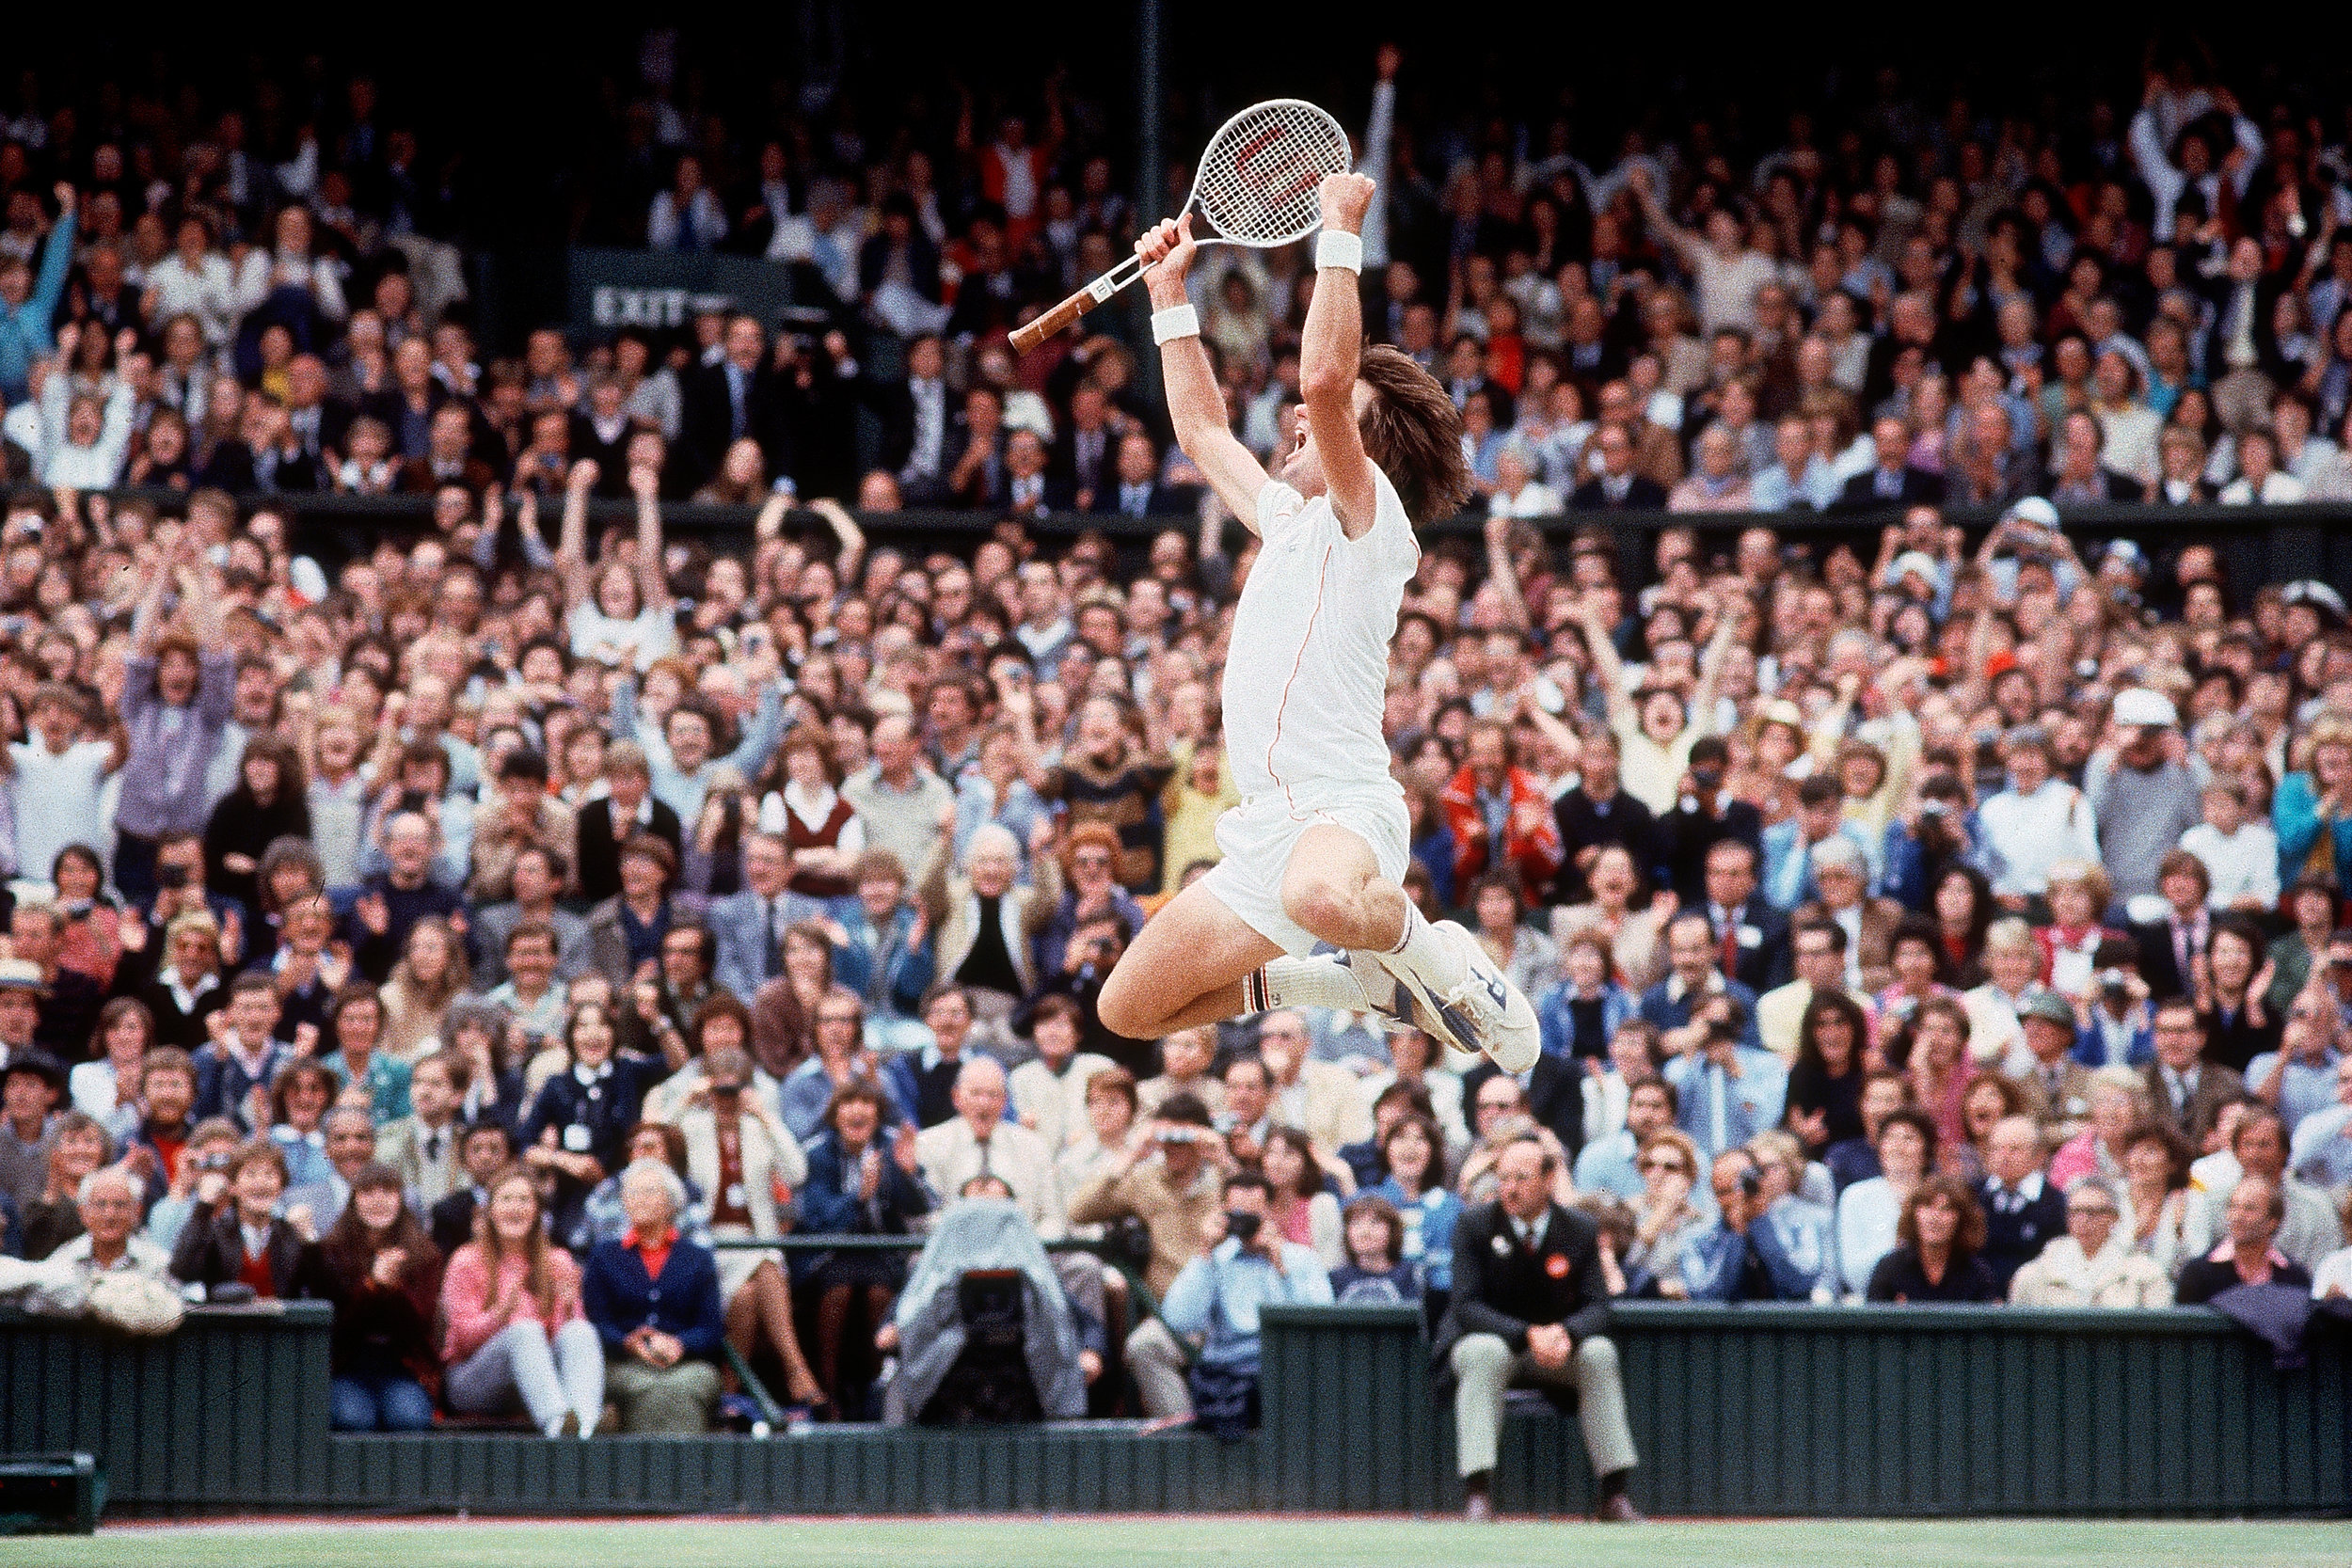 Jimmy Connors, 19